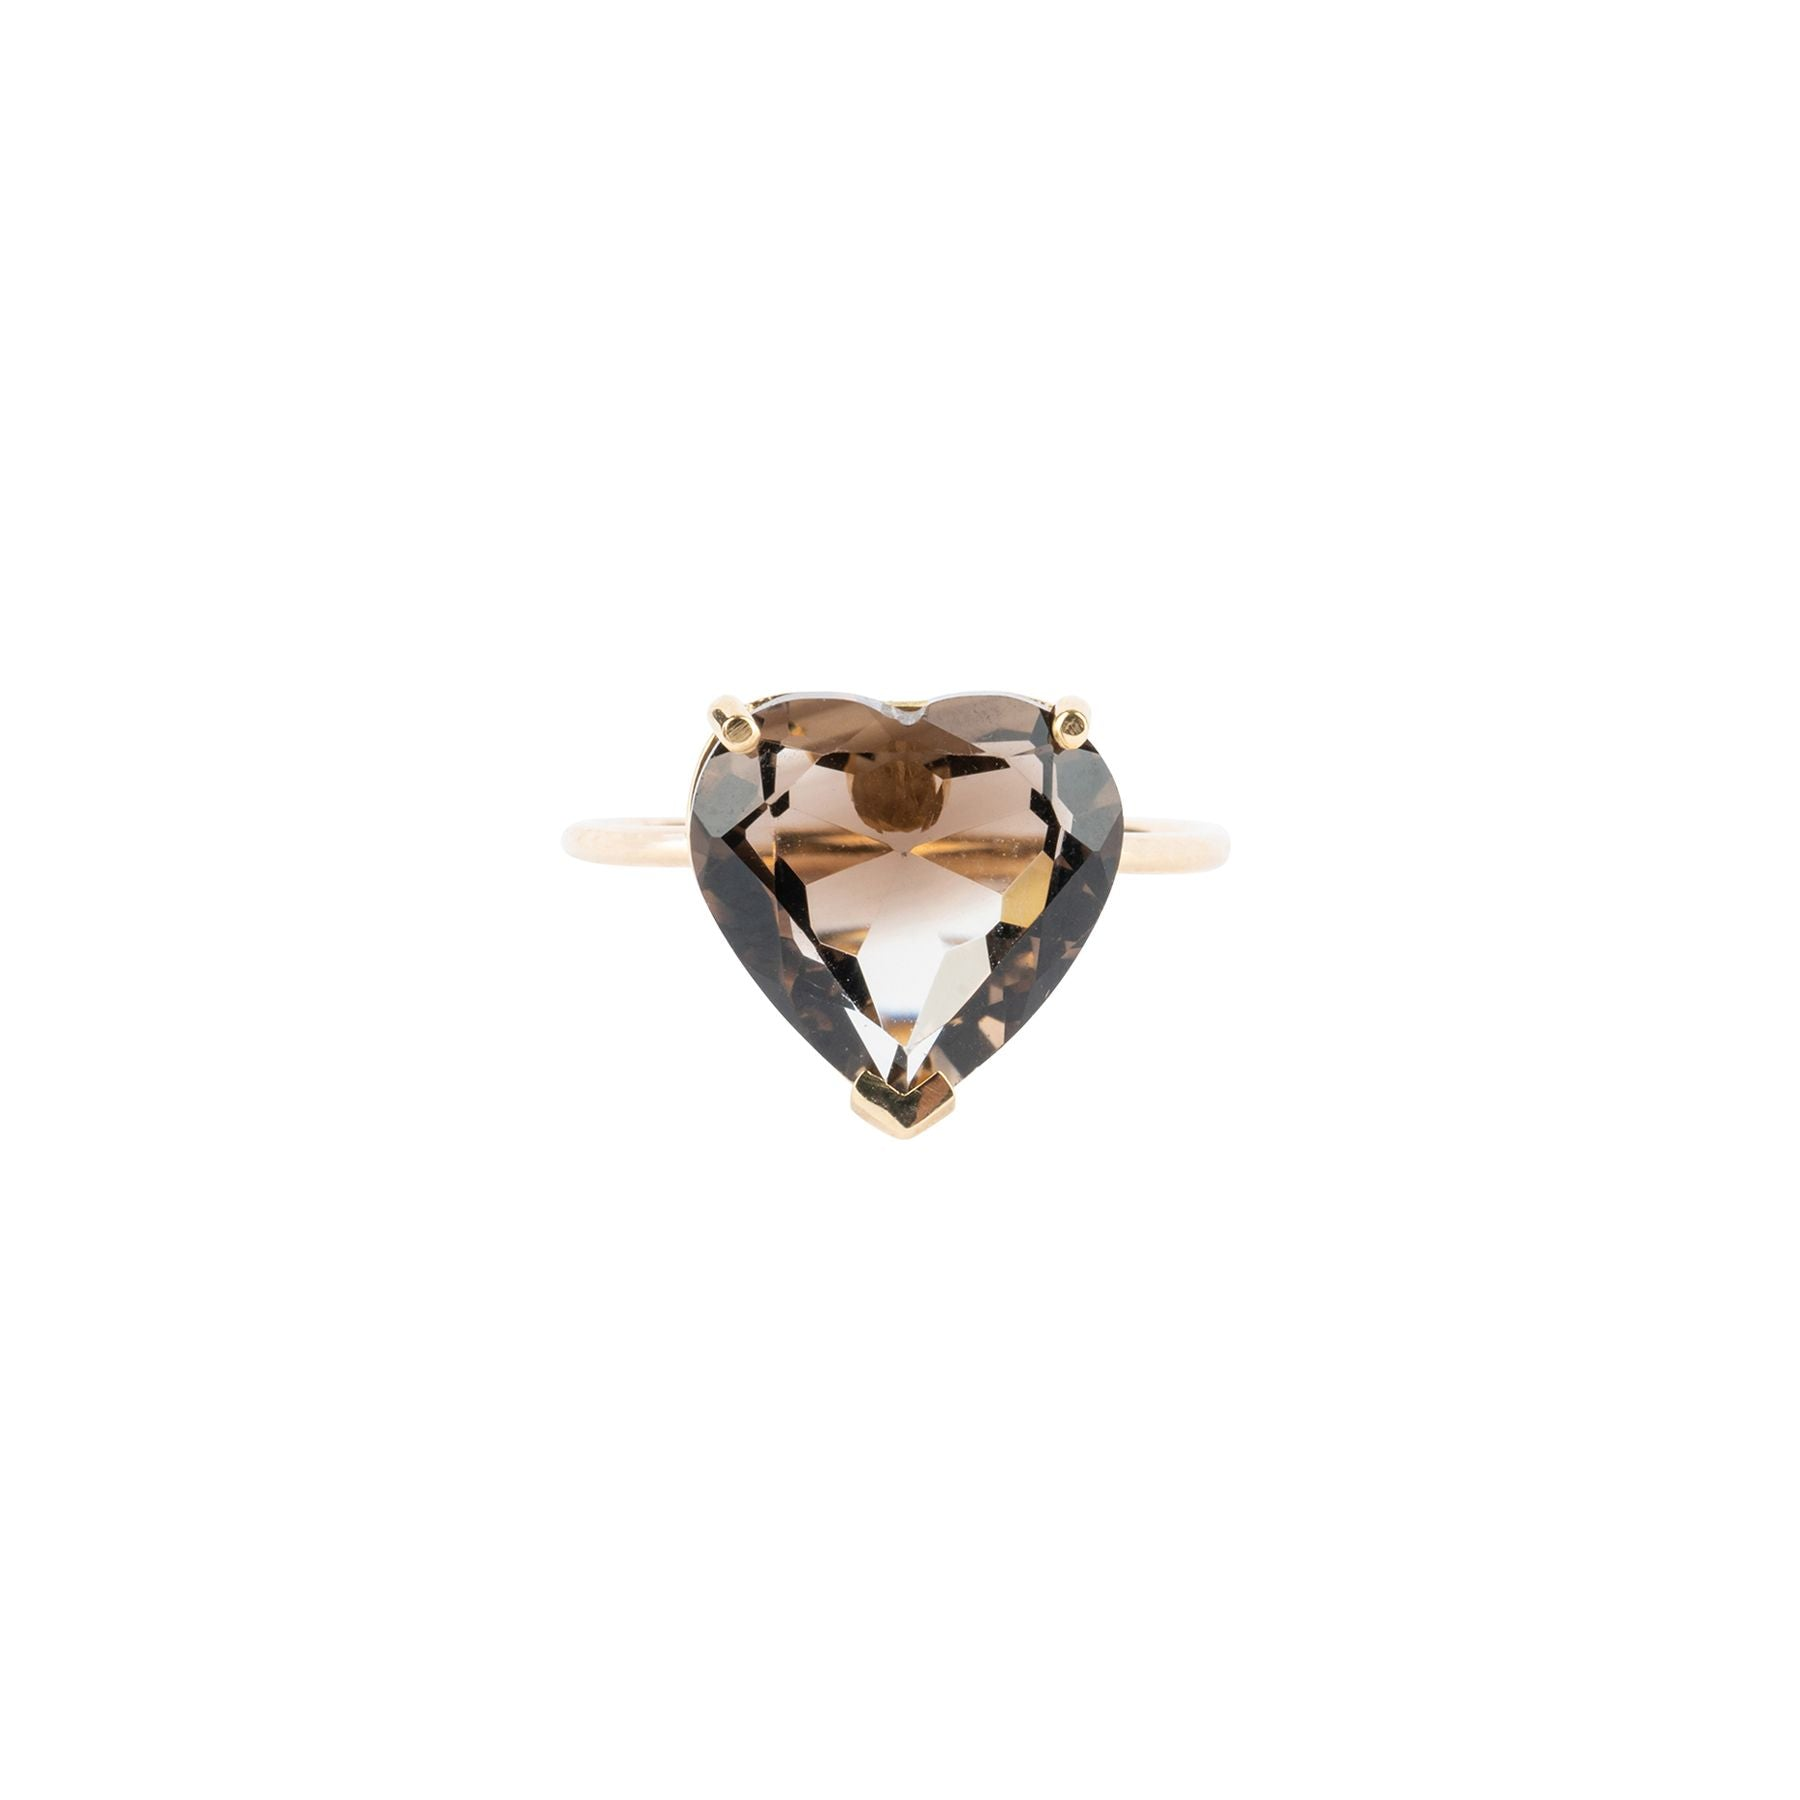 Large Smoky Quartz Heart Shape Ring